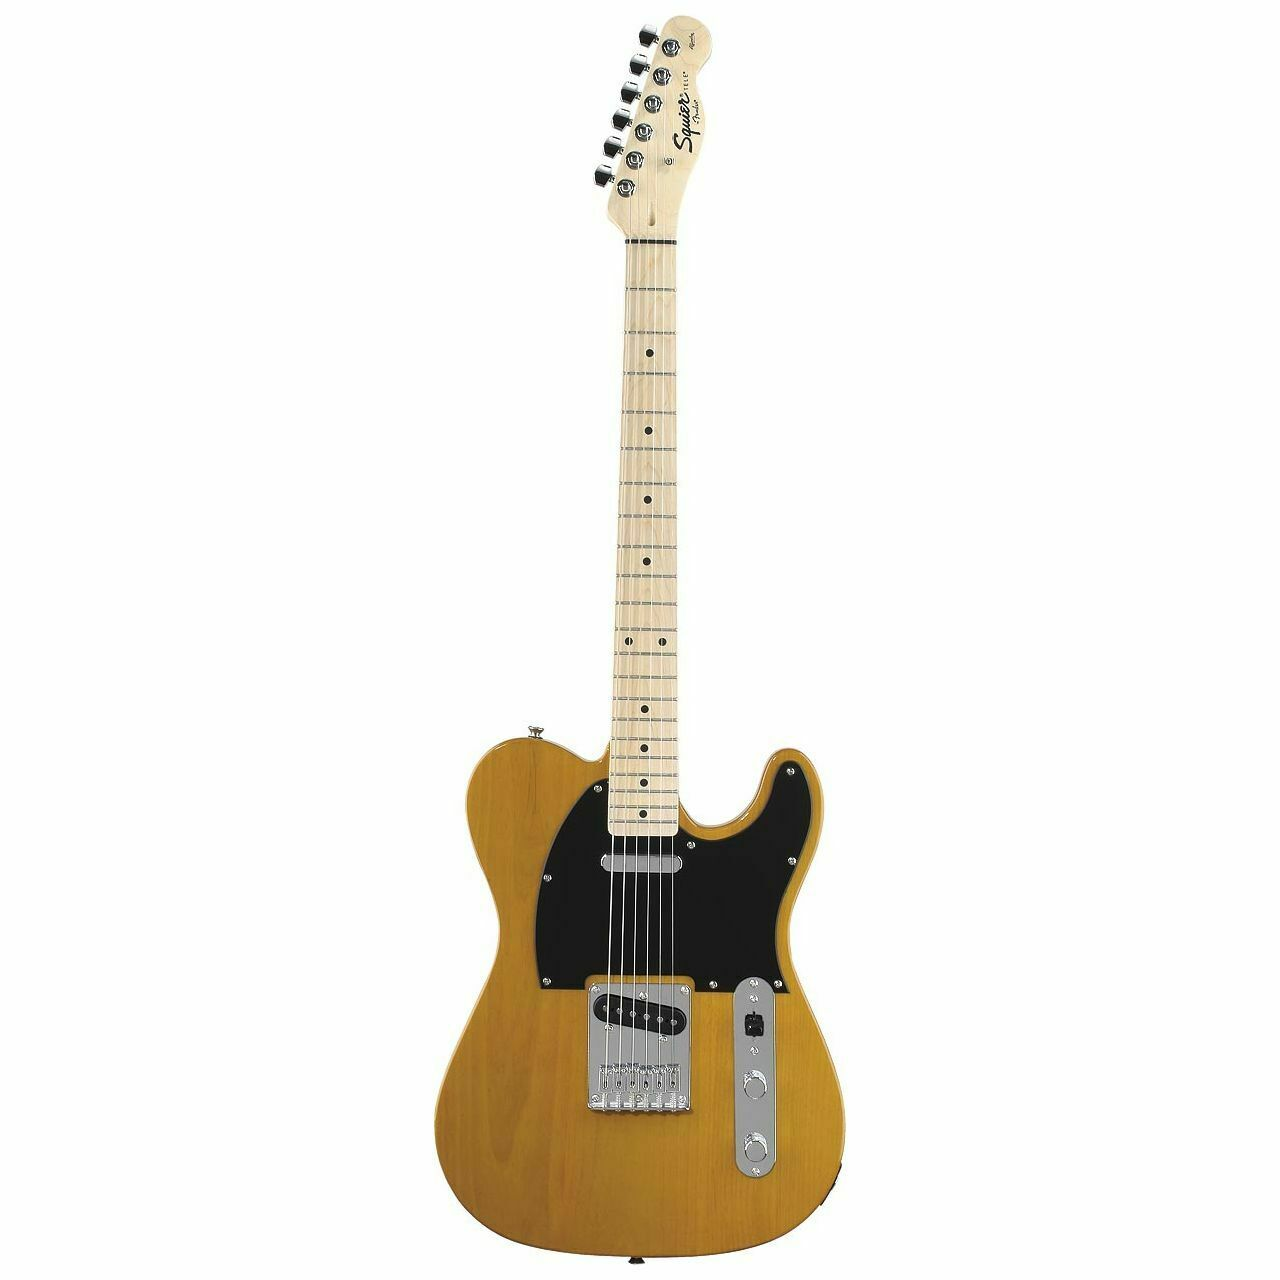 This Squier Telecaster electric guitar is for sale - SQUIER Affinity TELECASTER IN Butterscotch Blonde - E-Guitar